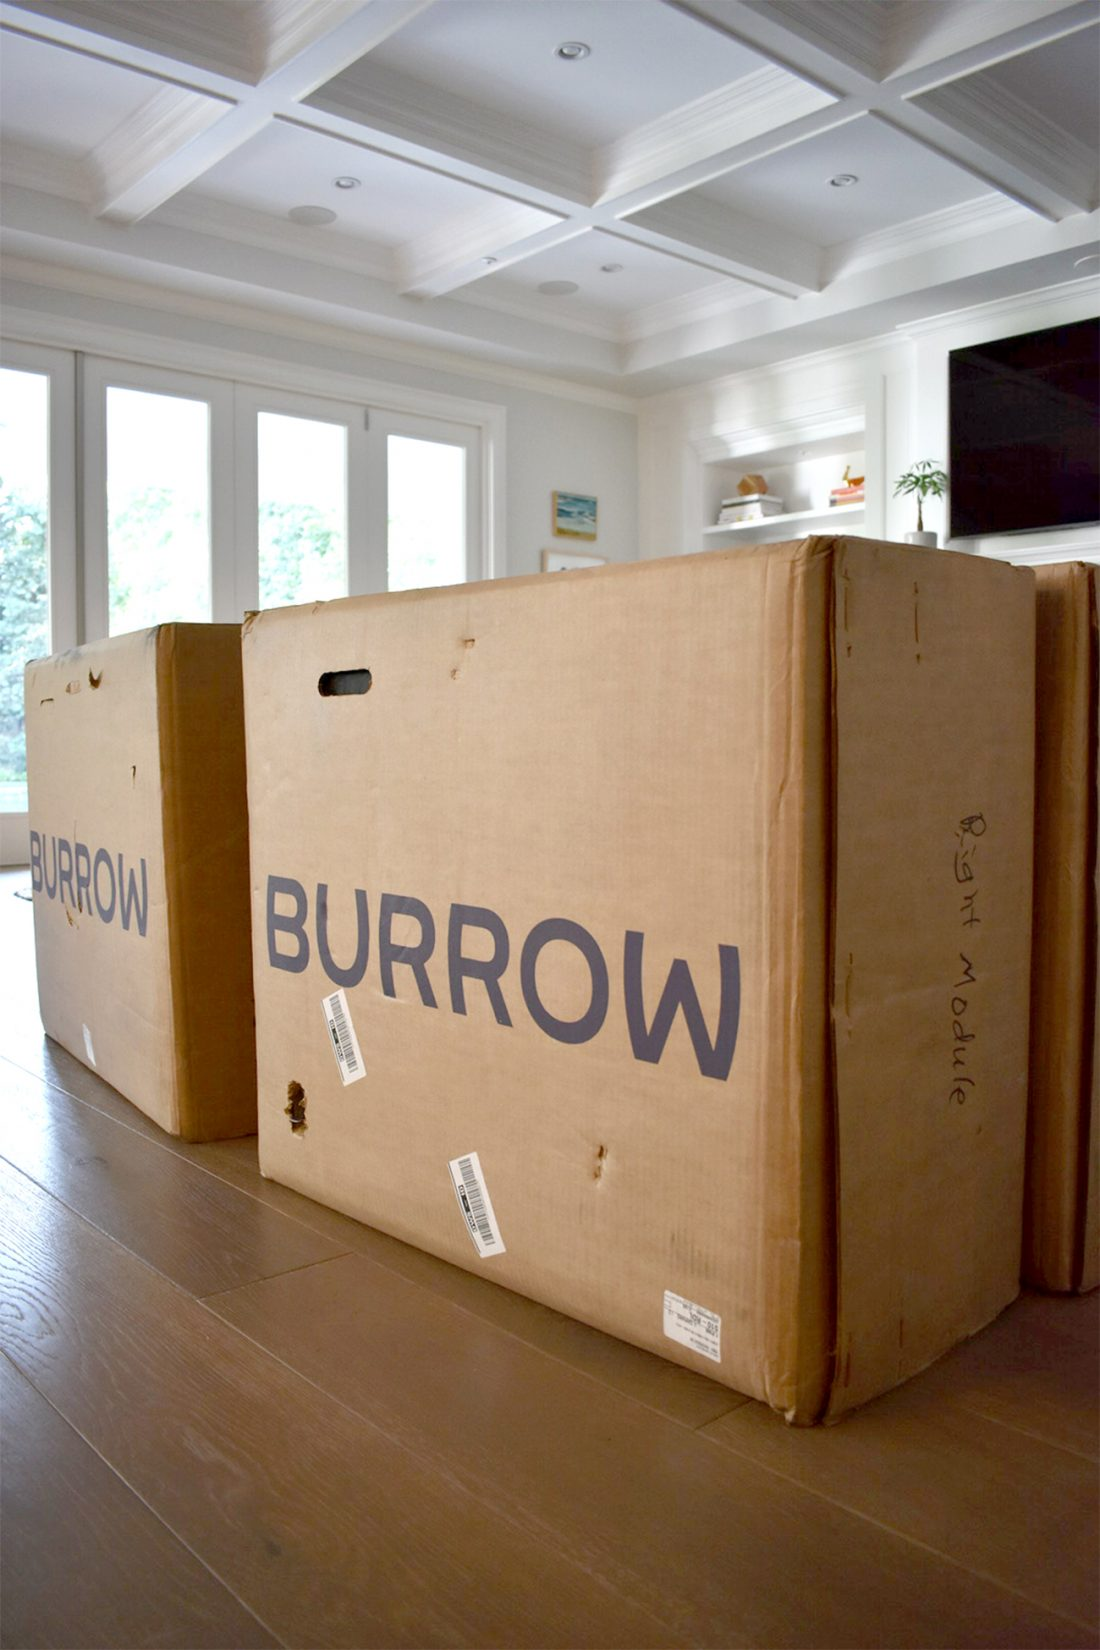 Burrow Sofa: Putting it together